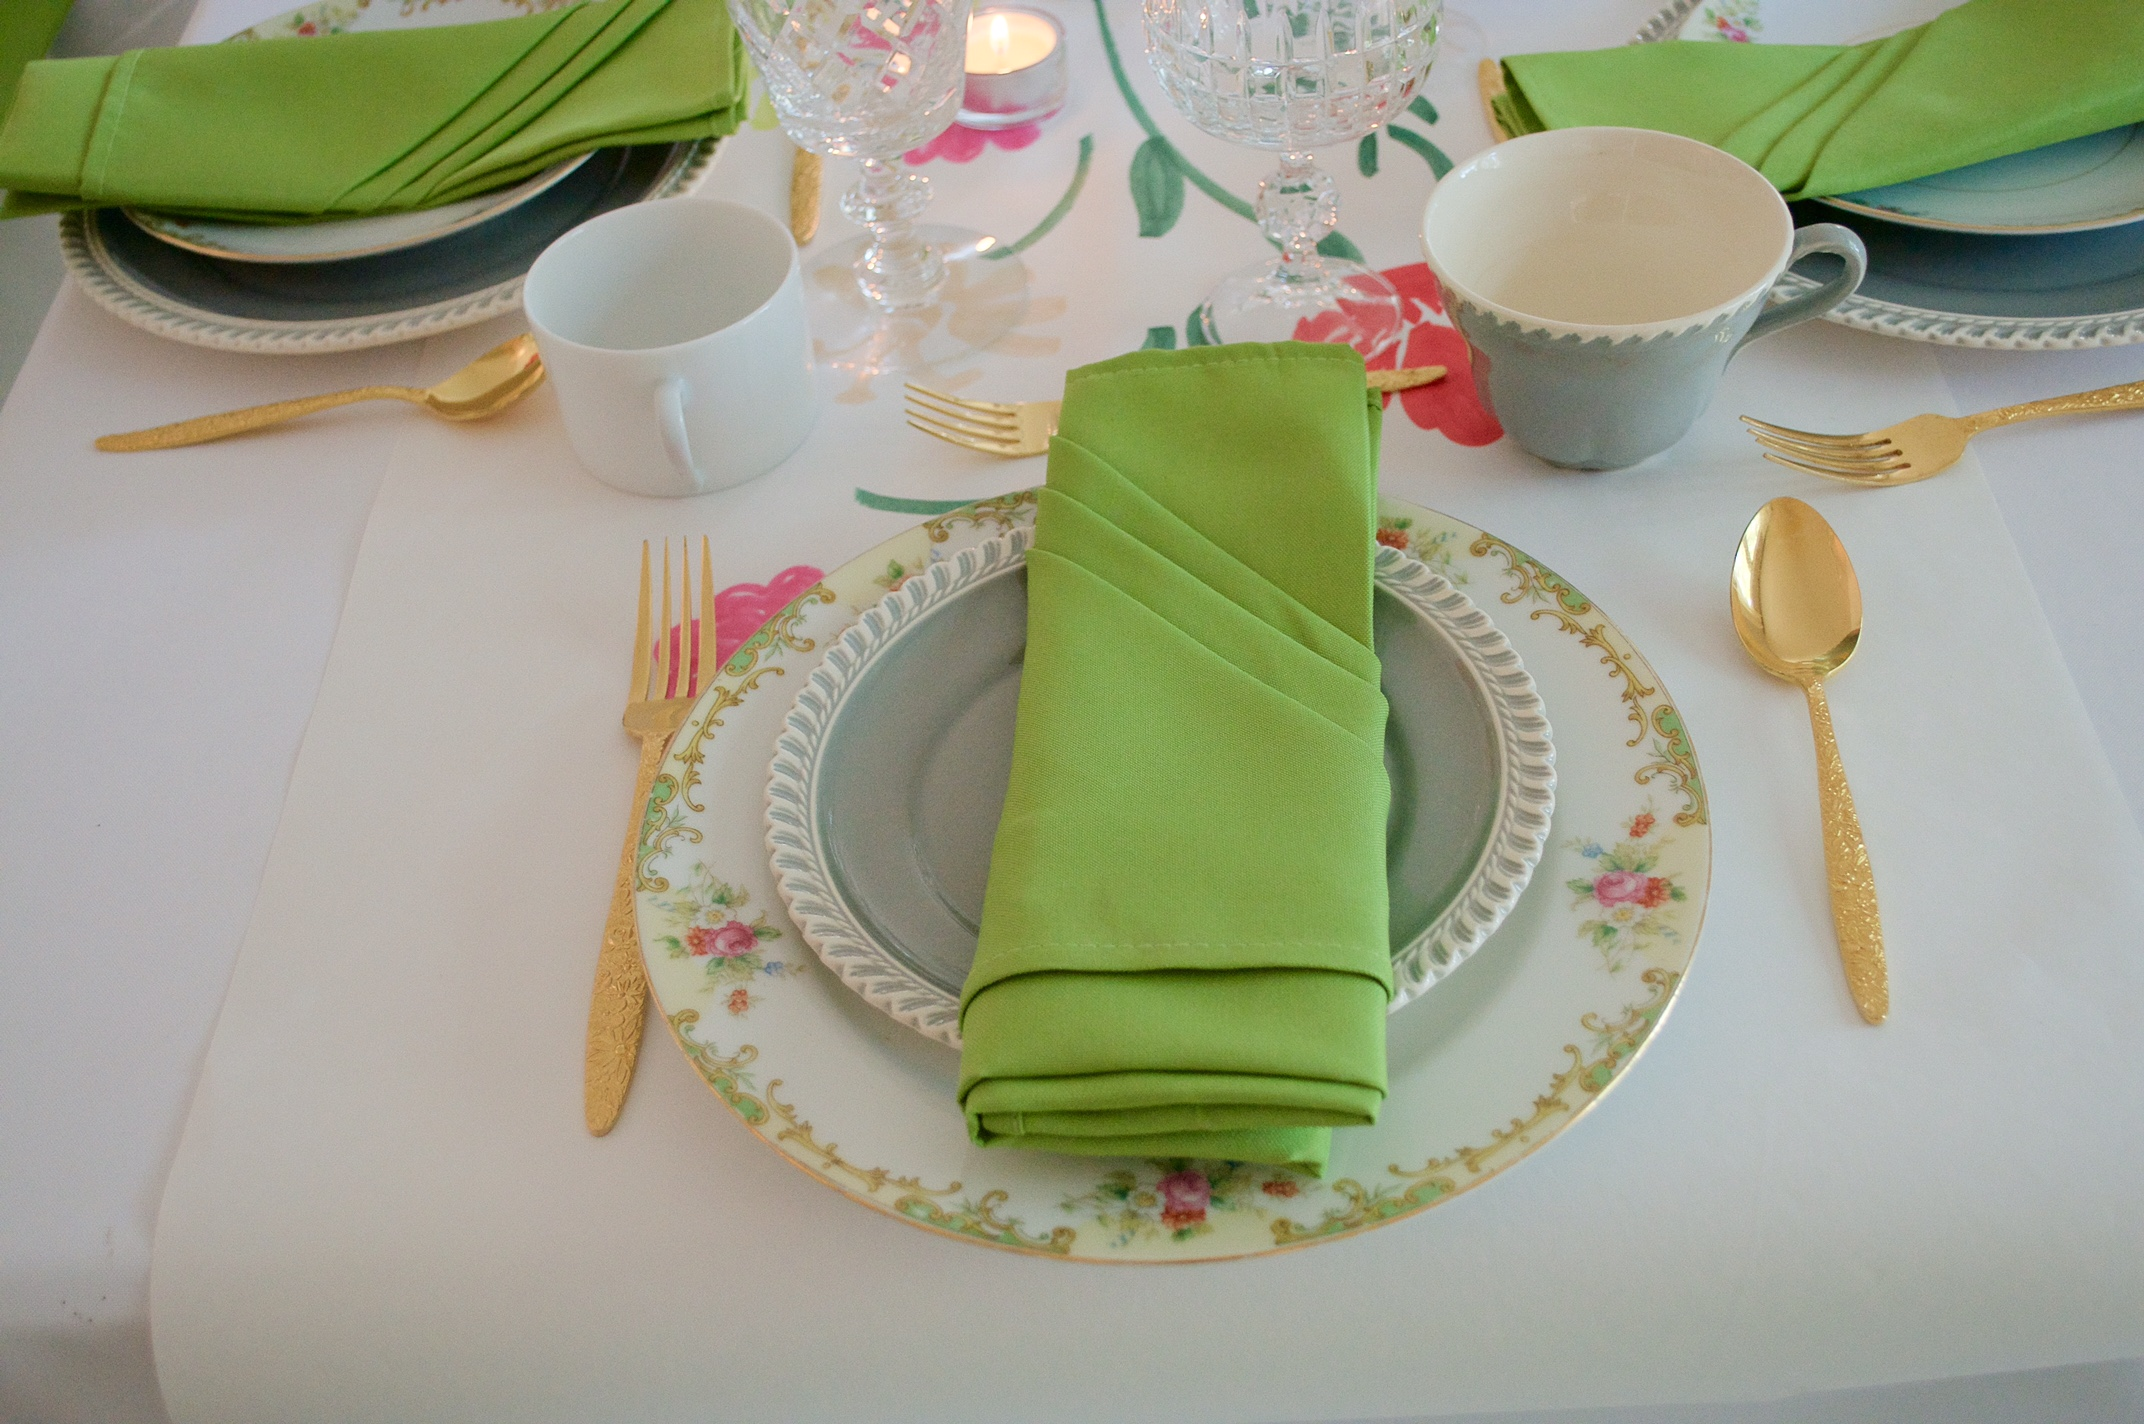 Mix-and-match vintage place settings